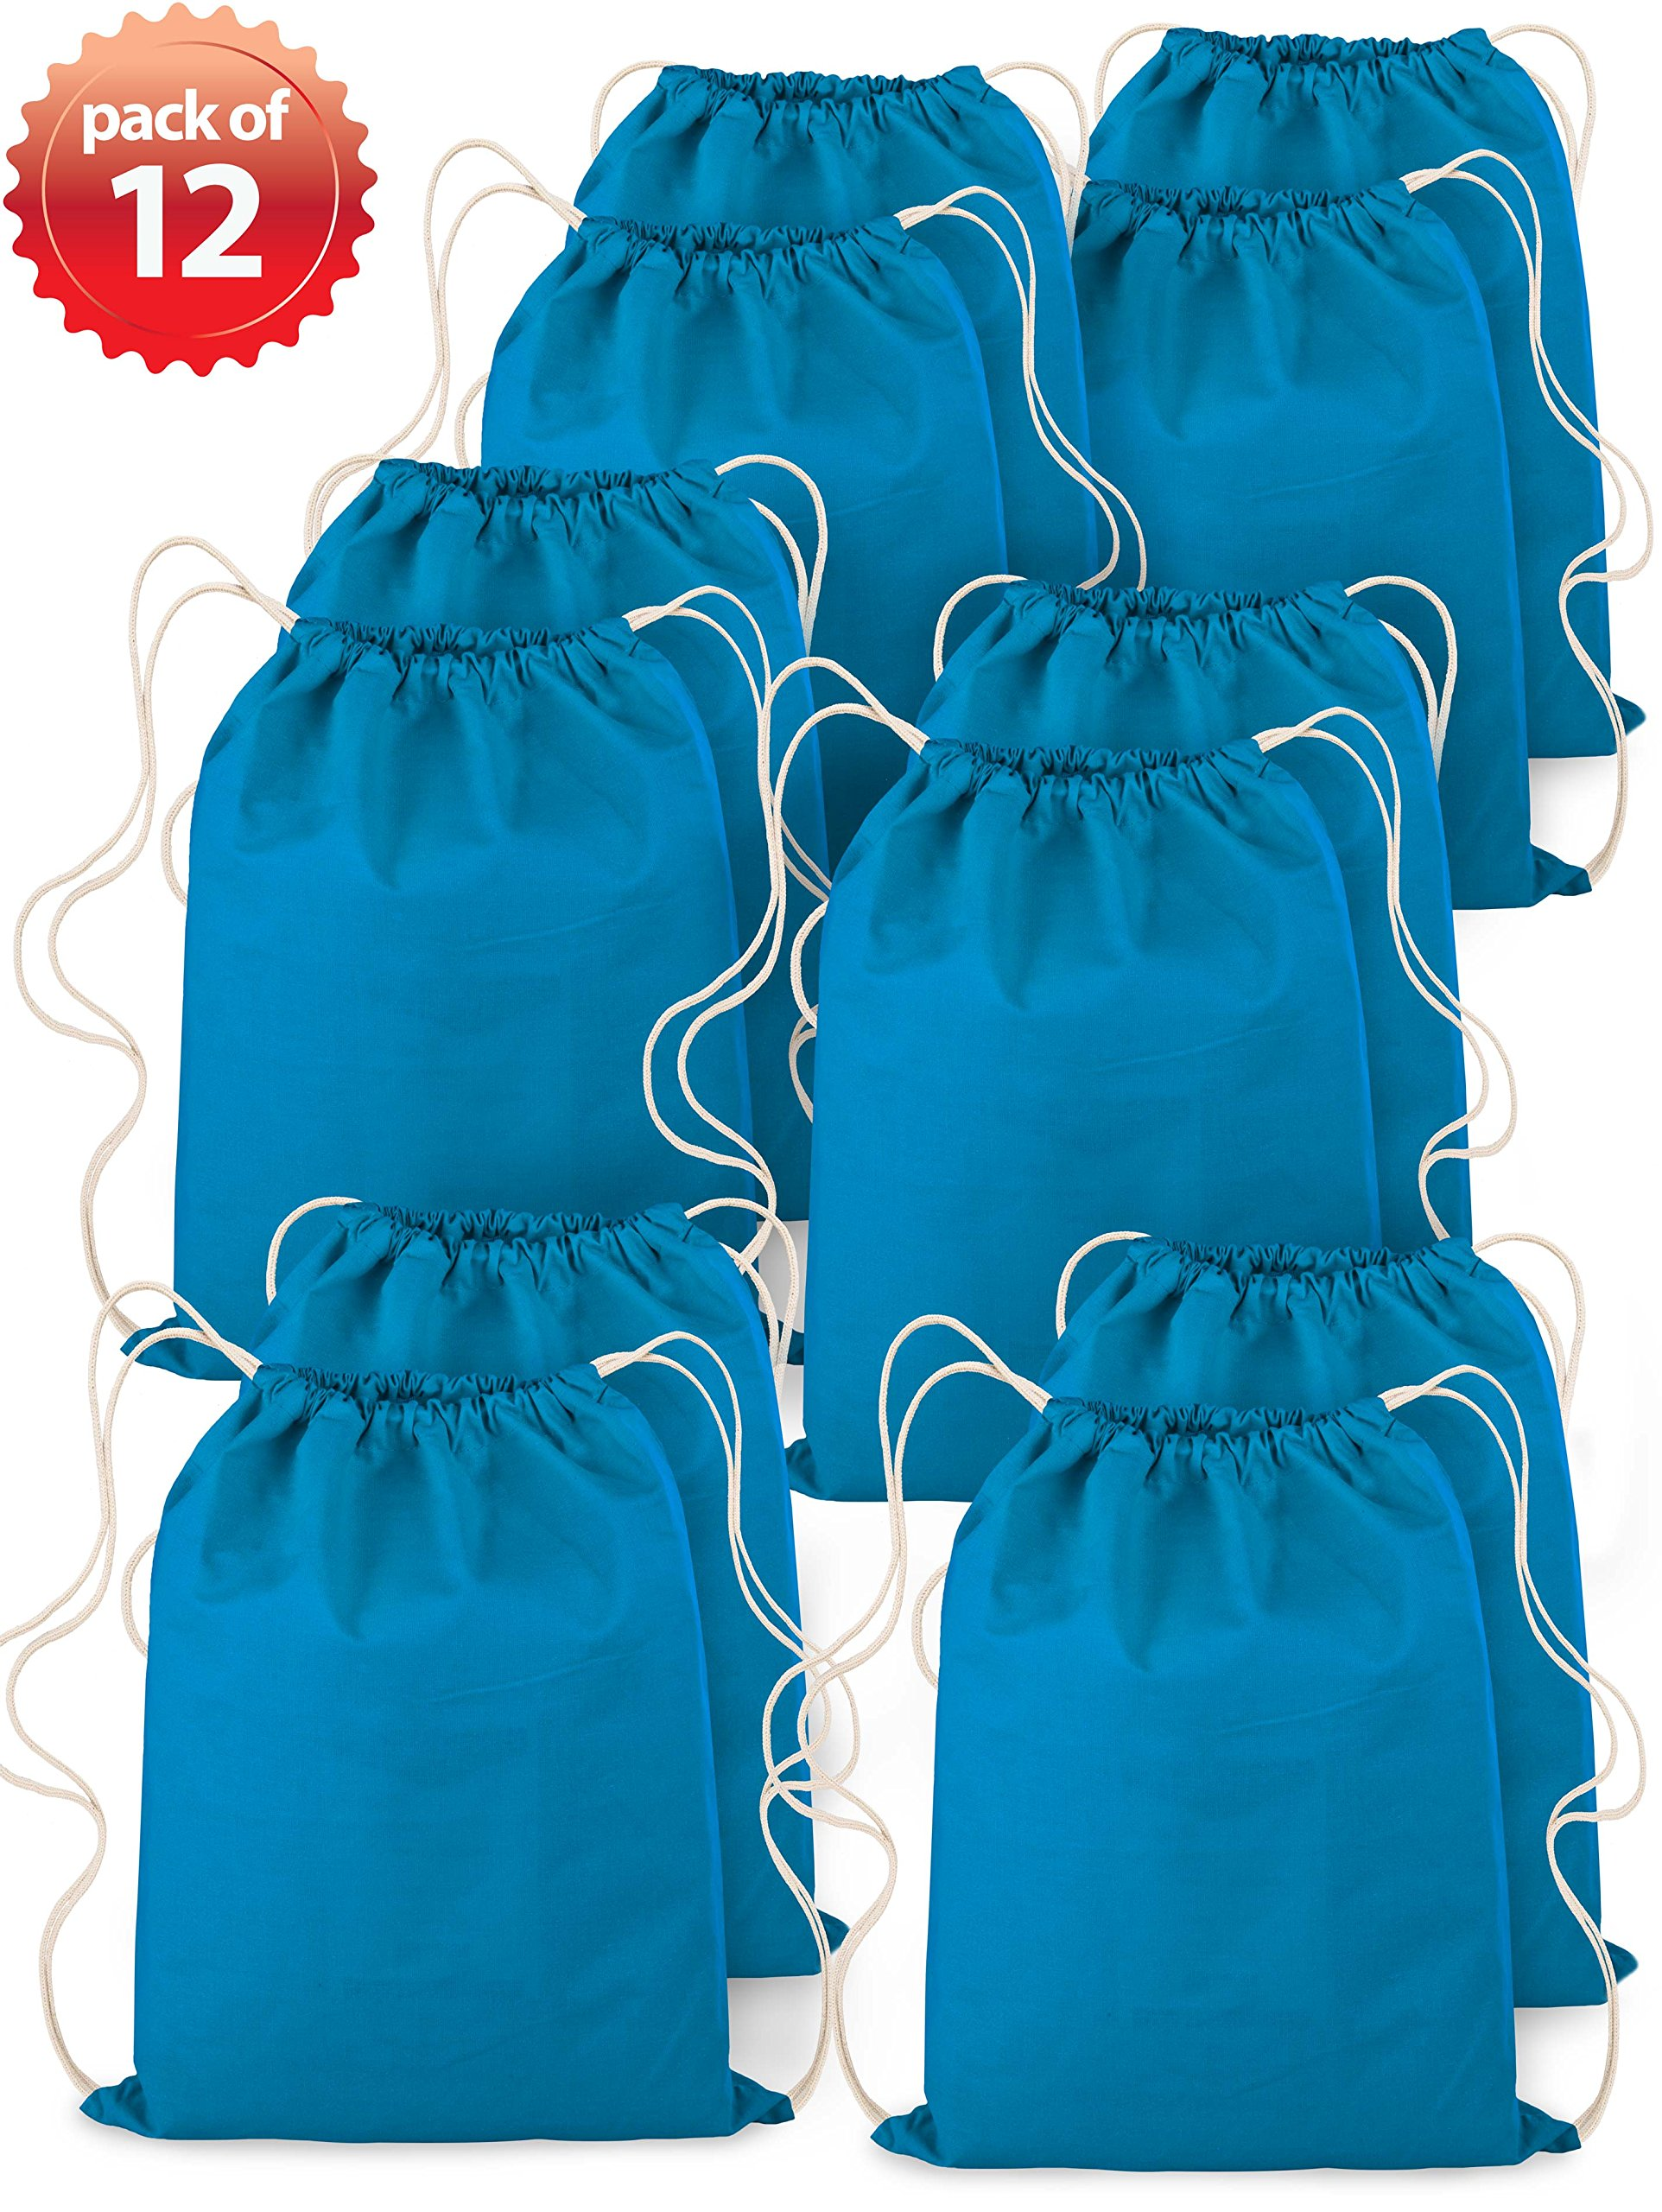 Backpack Drawstring Canvas On-The-Go Sportpack Bag Turquoise 14''x18'' 100% Cotton Pack of 12